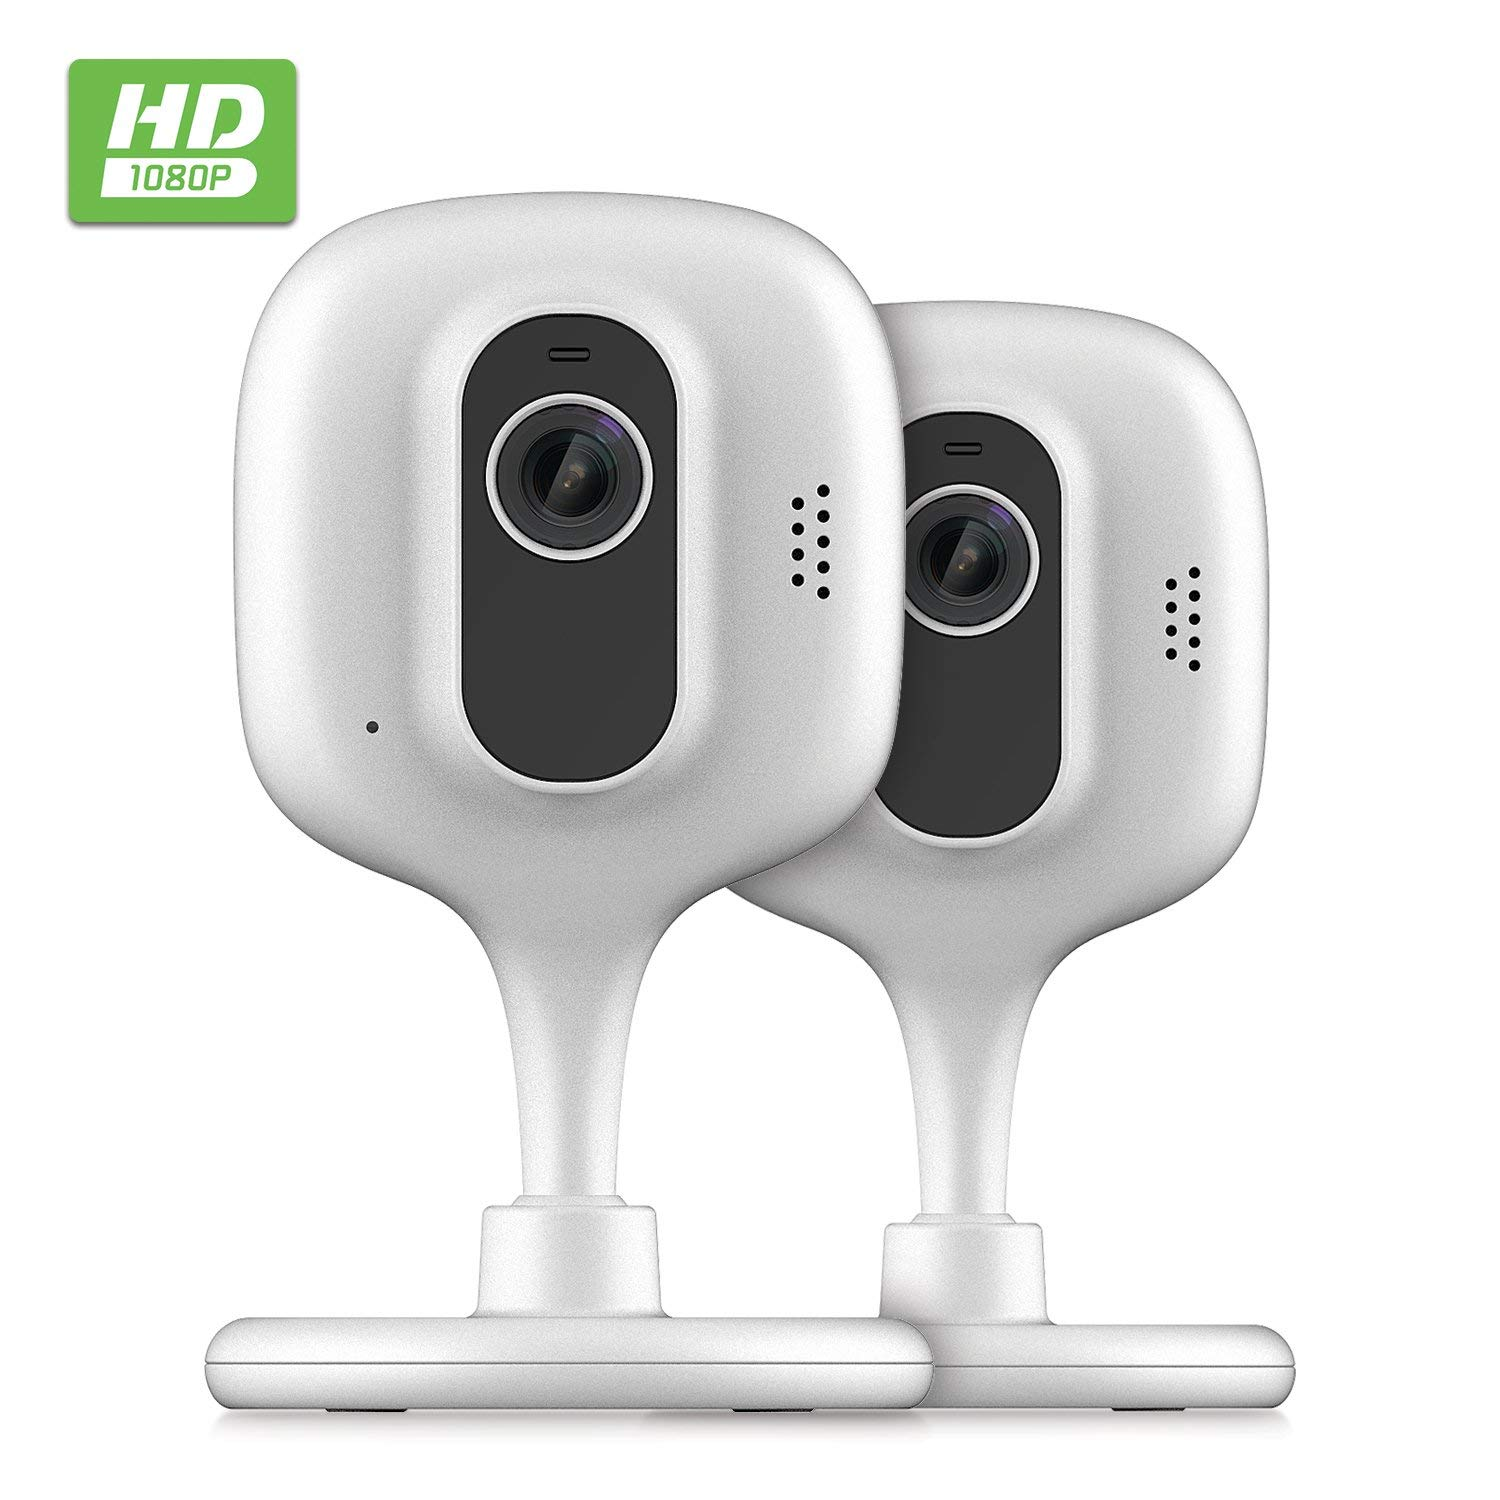 2-Pack Zencam 1080p WiFi Camera, Indoor Security Wireless IP Camera, Two-Way Talk, Night Vision for Home, Office, Baby, Pet Cam with MicroSD & Cloud Storage, Supports 2.4Ghz, White (2PACK-E2W)